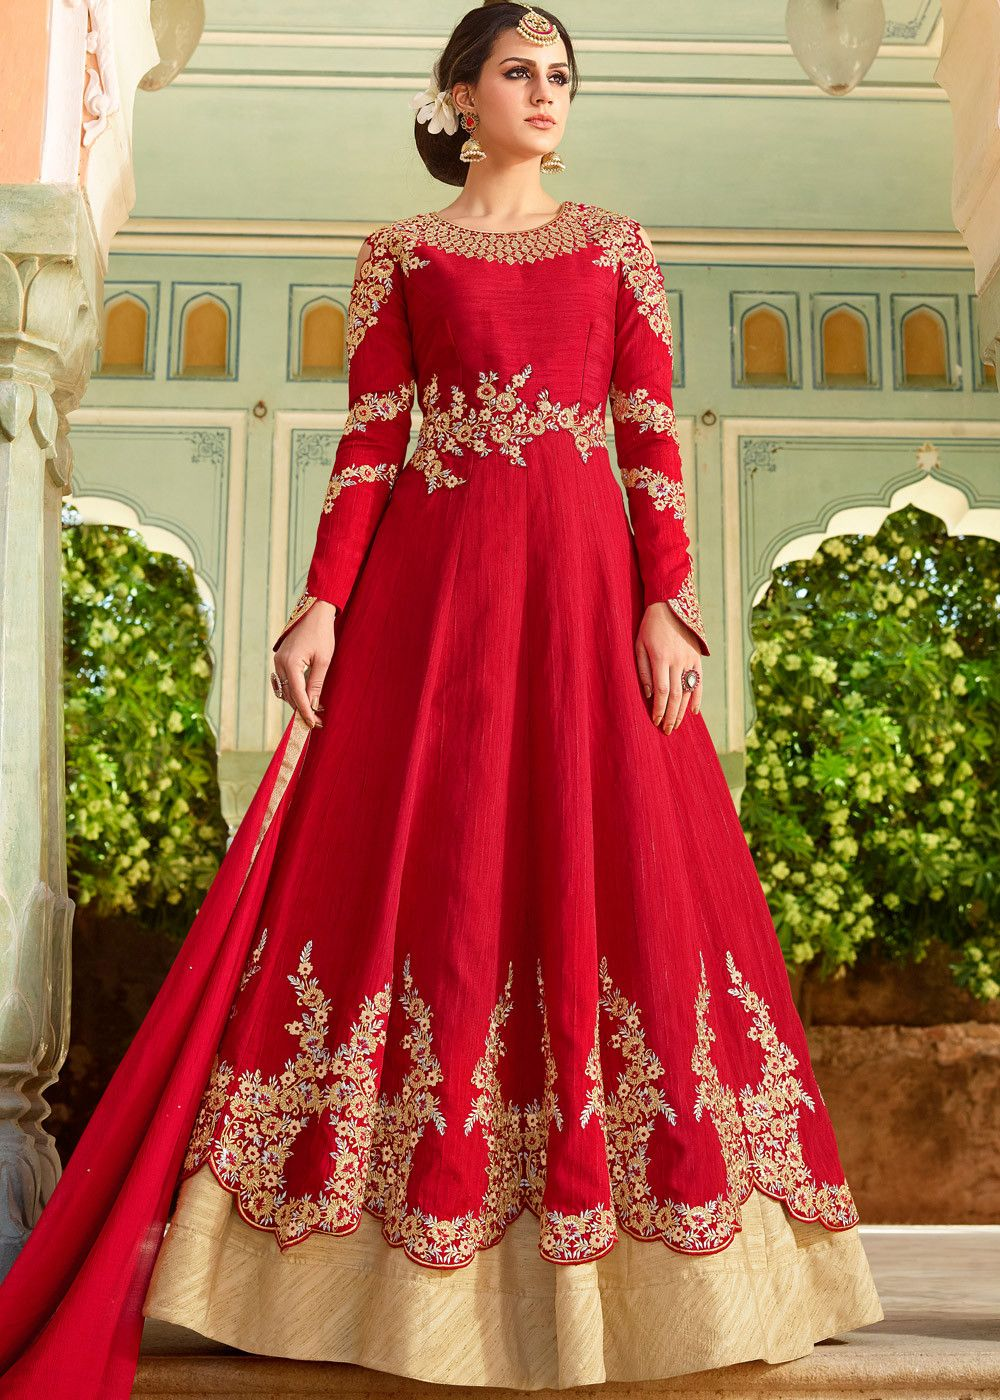 606b16aebd6 Scallop edged long  kameez in art  silk embellished with  floral resham  embroidery and stone work.